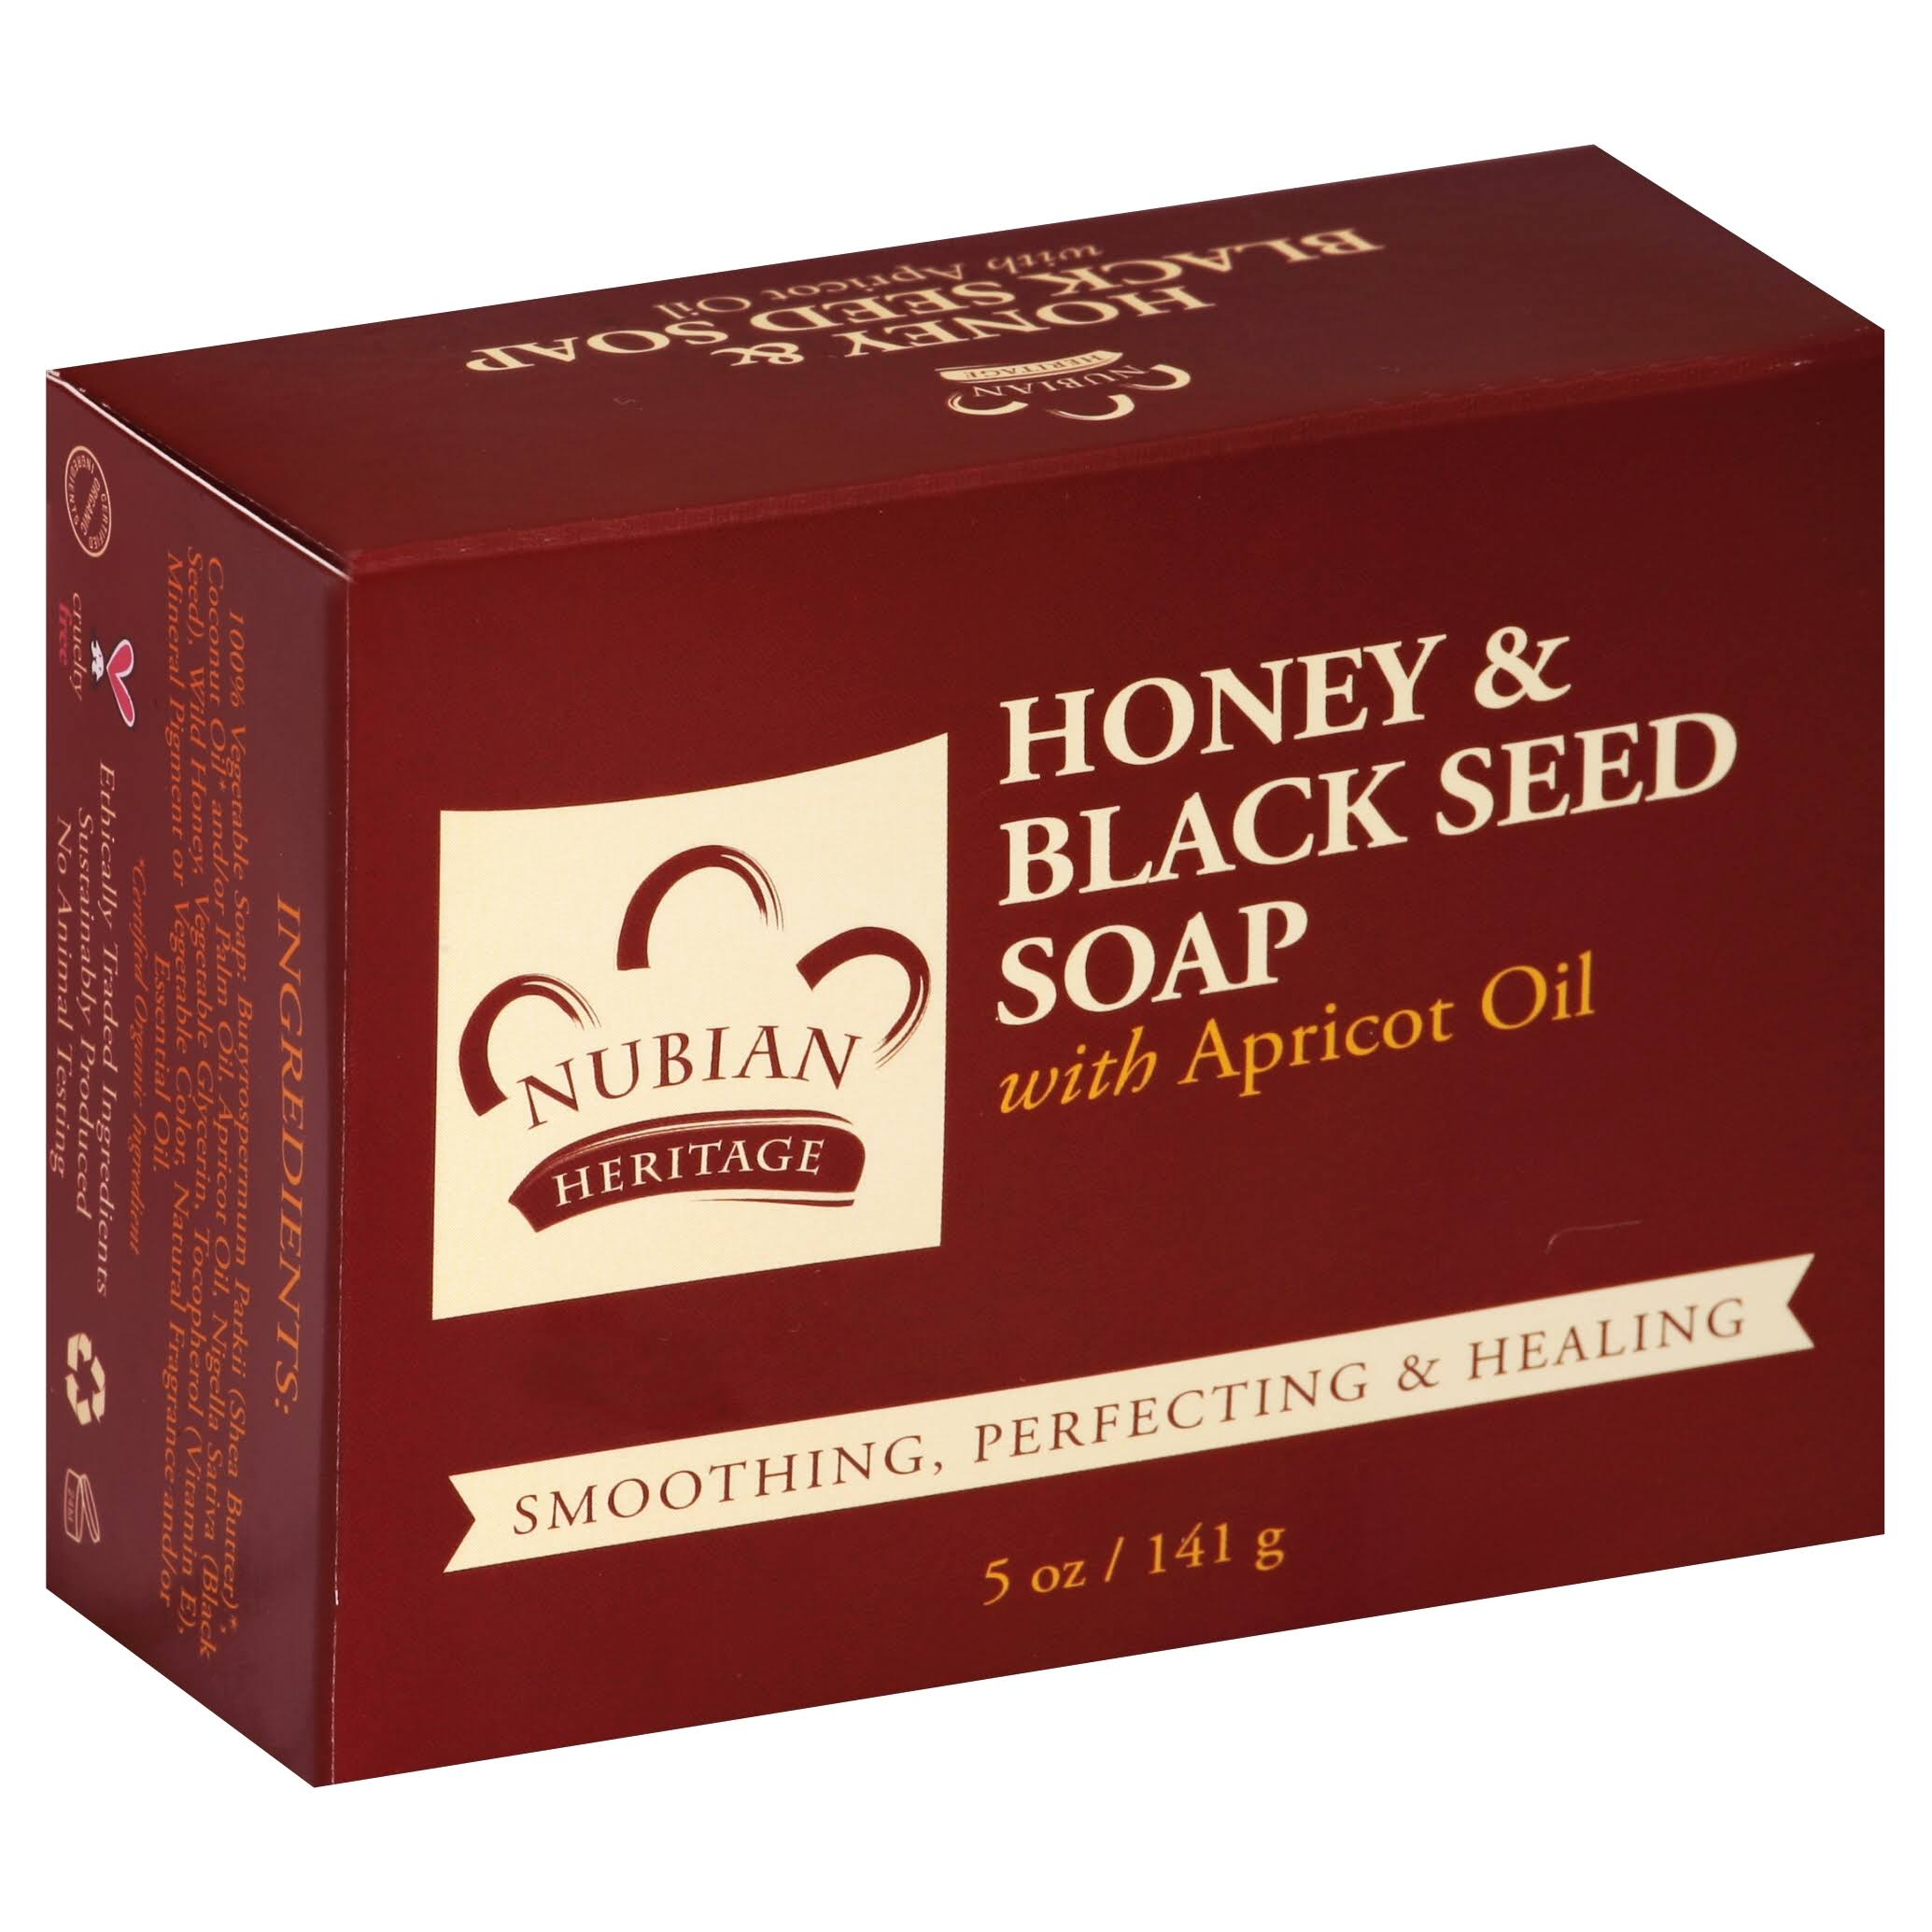 Nubian Heritage Honey & Black Seed Soap